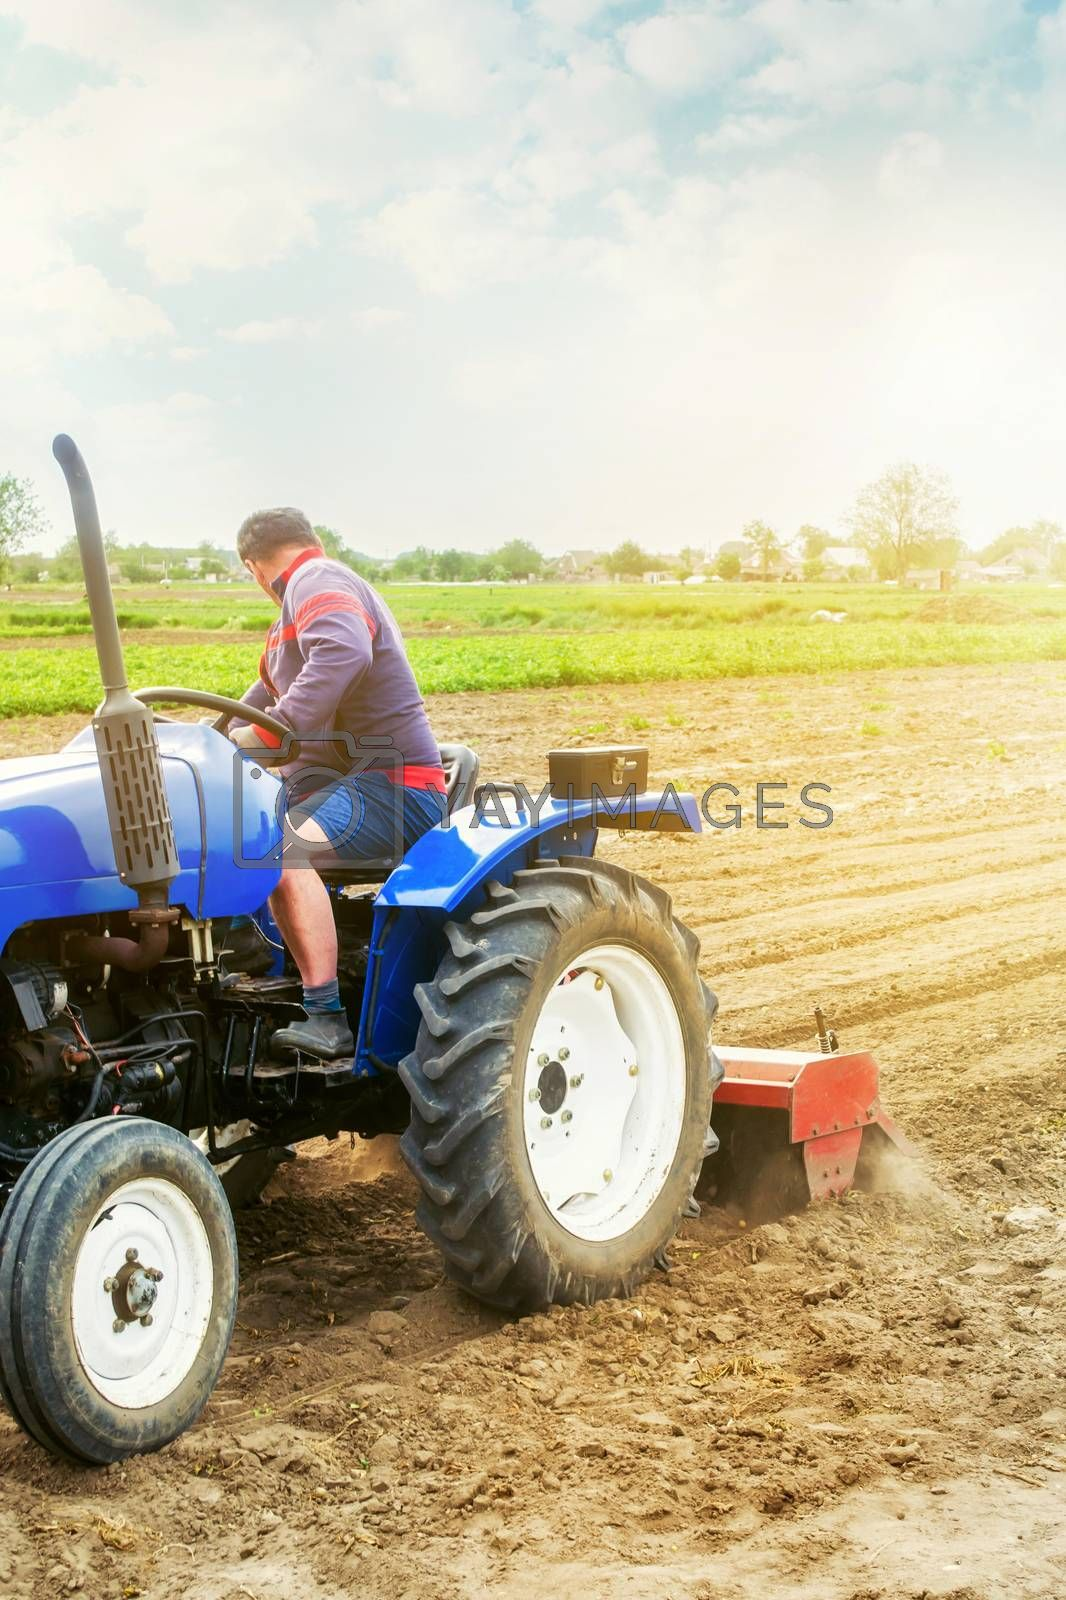 A farmer on a tractor cultivates a farm field. Soil milling, crumbling and mixing. Agriculture, growing organic food vegetables. Loosening the surface, cultivating the land for further planting.